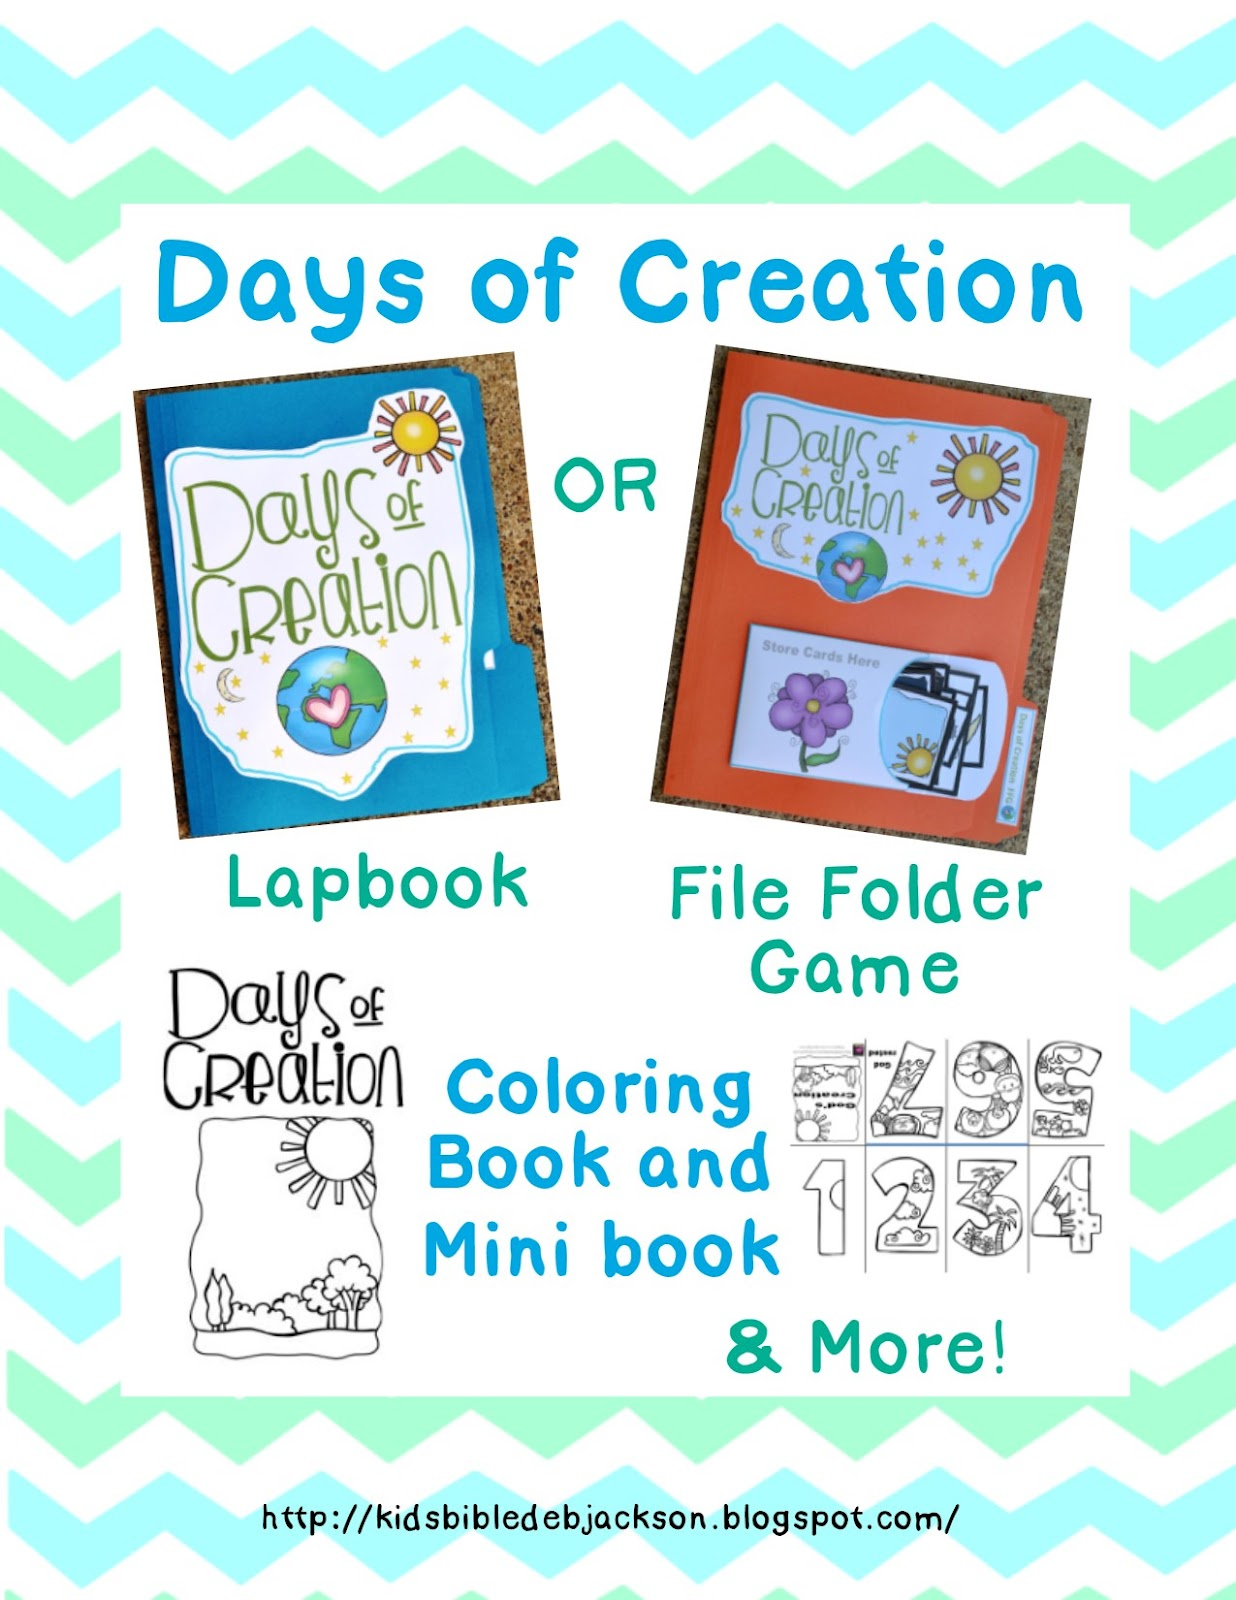 http://kidsbibledebjackson.blogspot.com/2014/08/creation-lapbook-file-folder-game-more.html